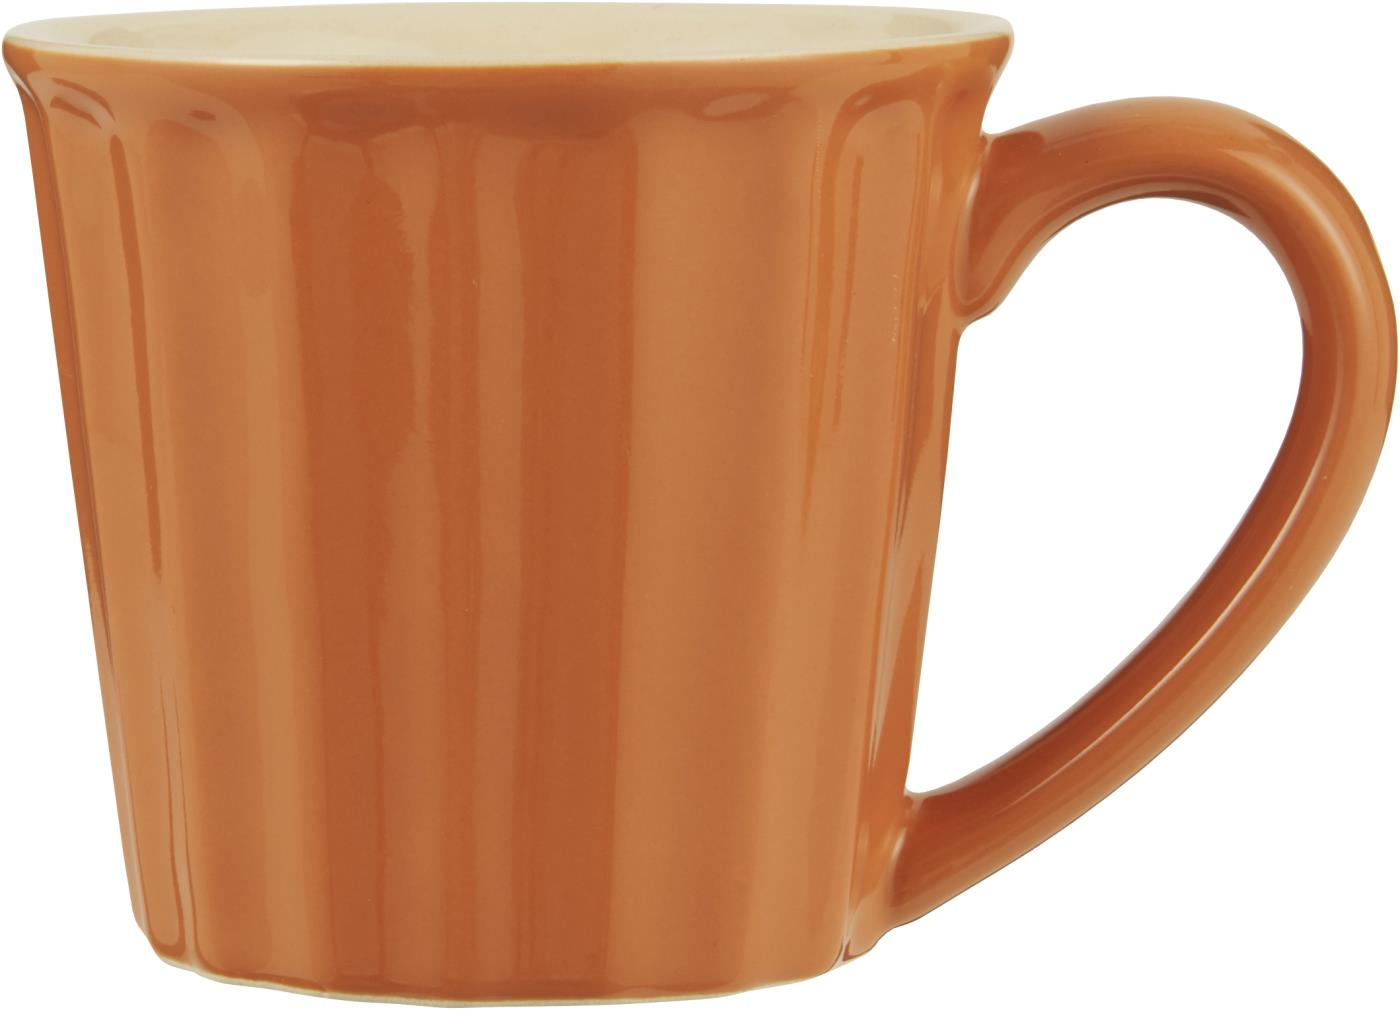 Geschirr Keramik Ib Laursen Becher Mynte Orange Keramik Geschirr Pumpkin Spice Tasse 250 Ml